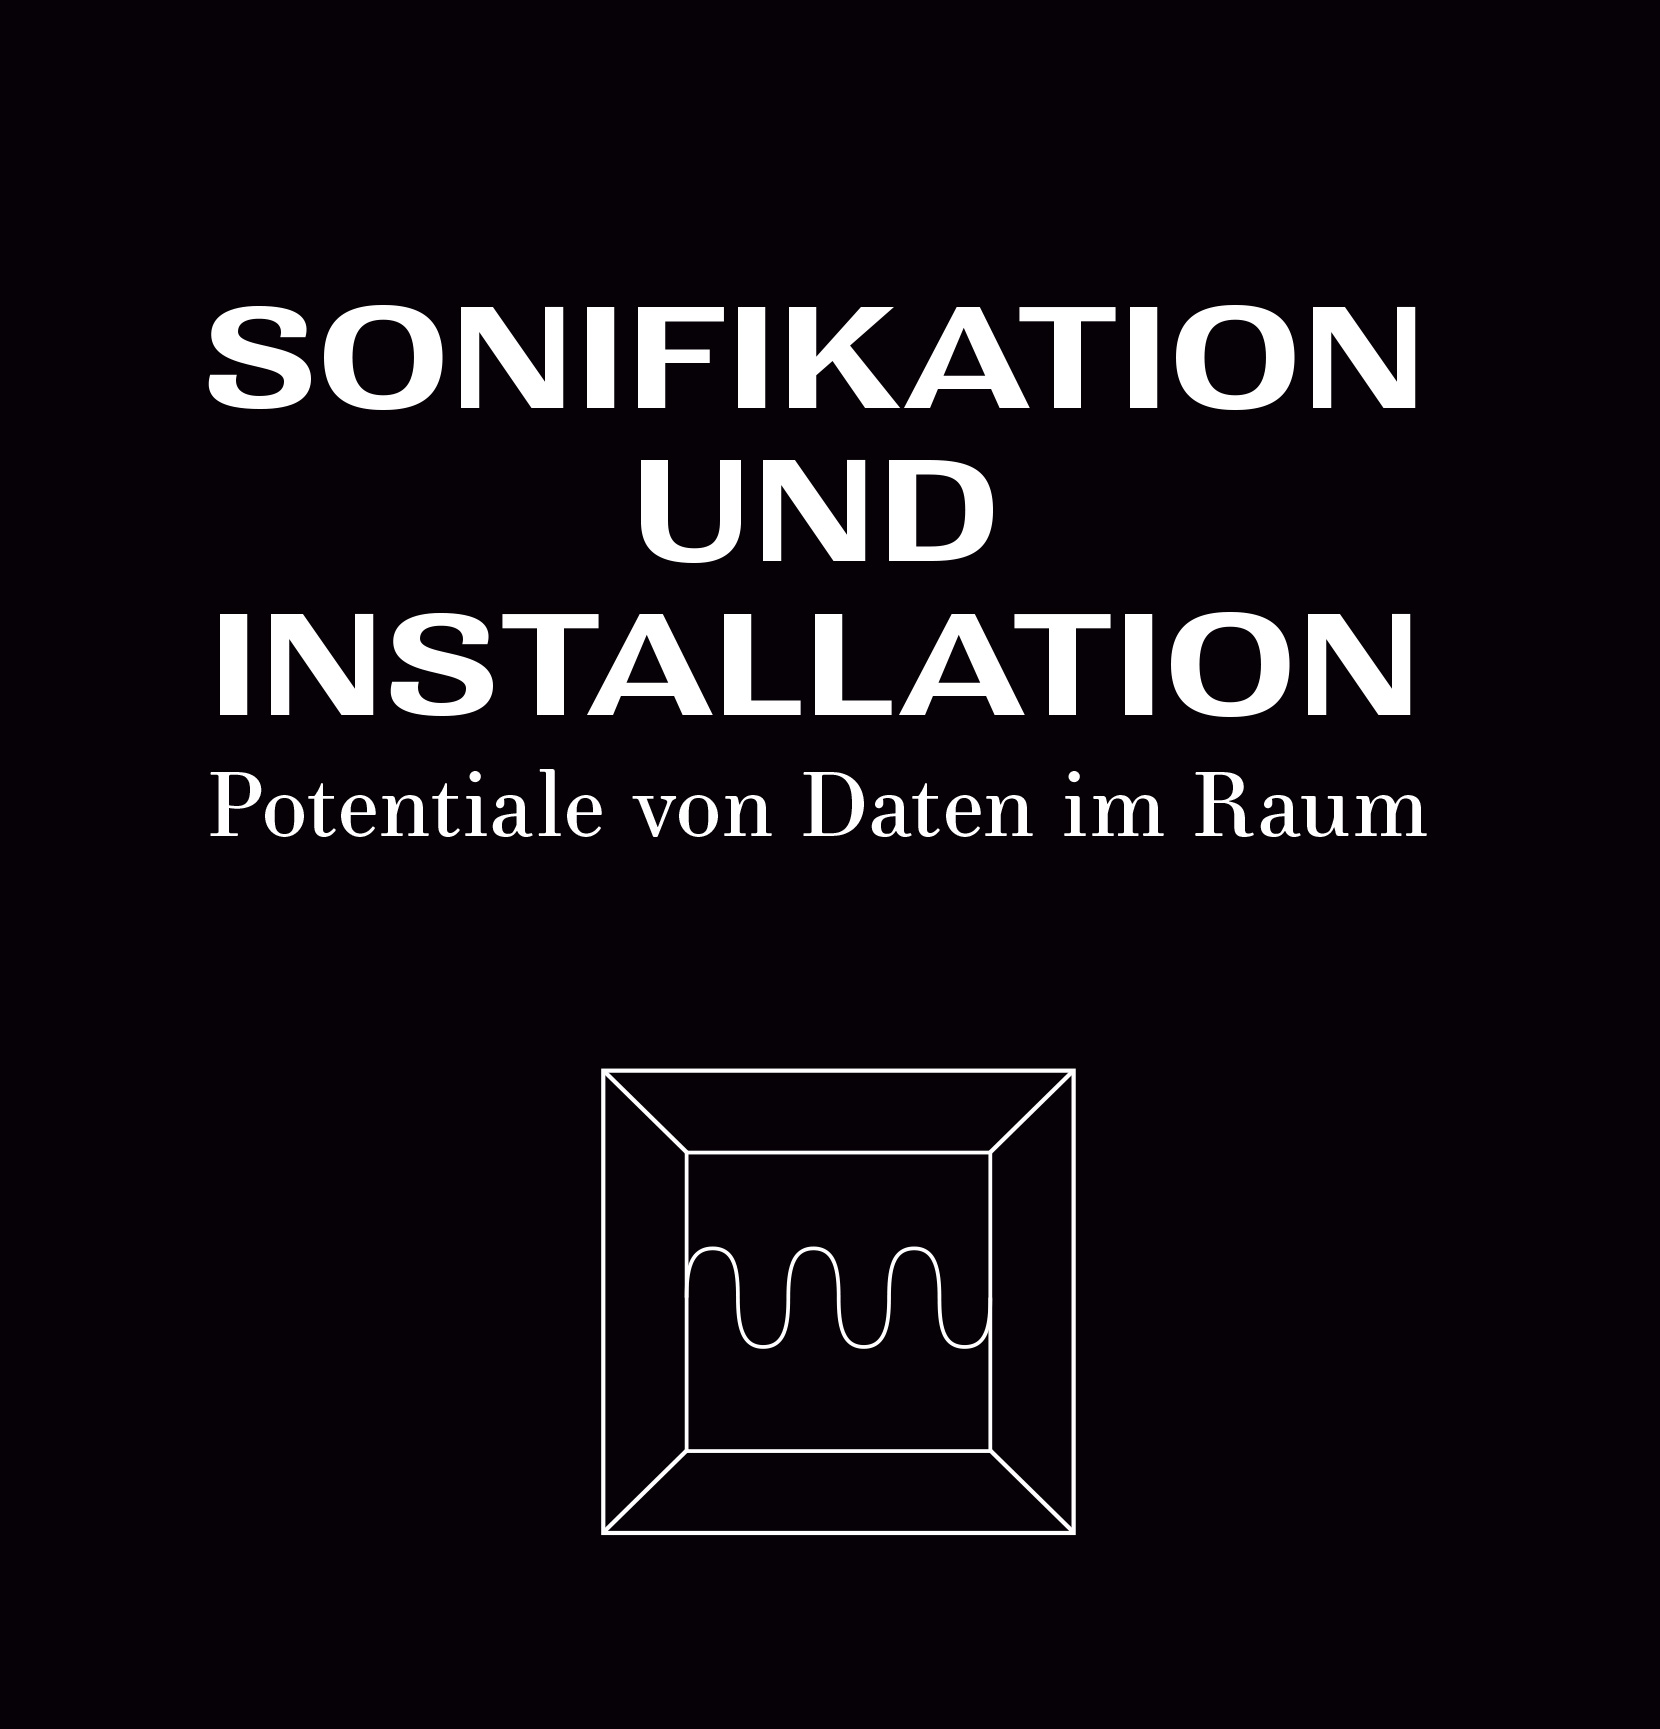 daten audiovisuell sonifikation